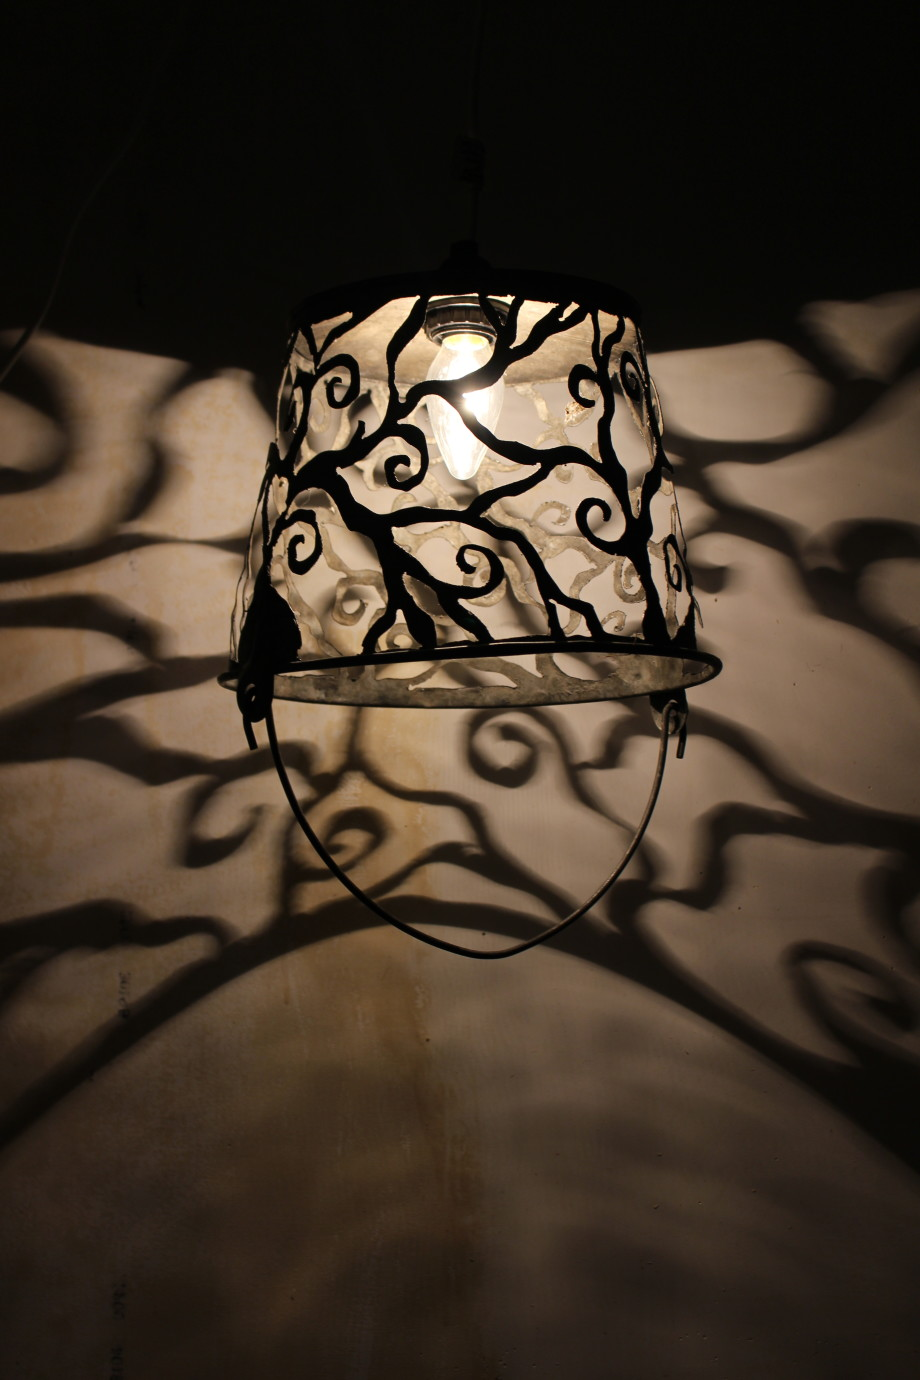 Spiral Vines lampshade